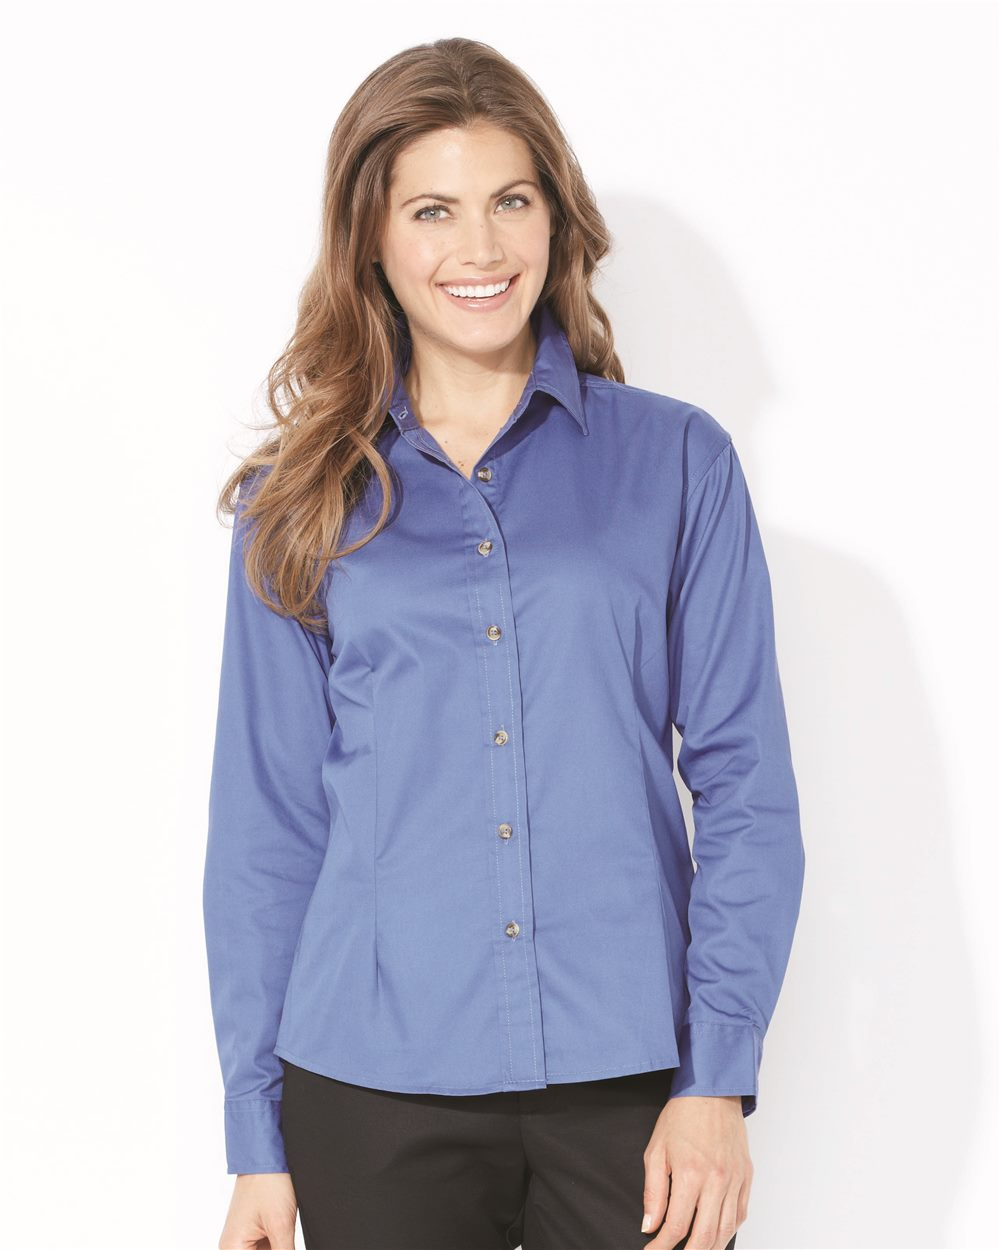 FeatherLite 5283 Ladies' Long Sleeve Stain Resistant ...